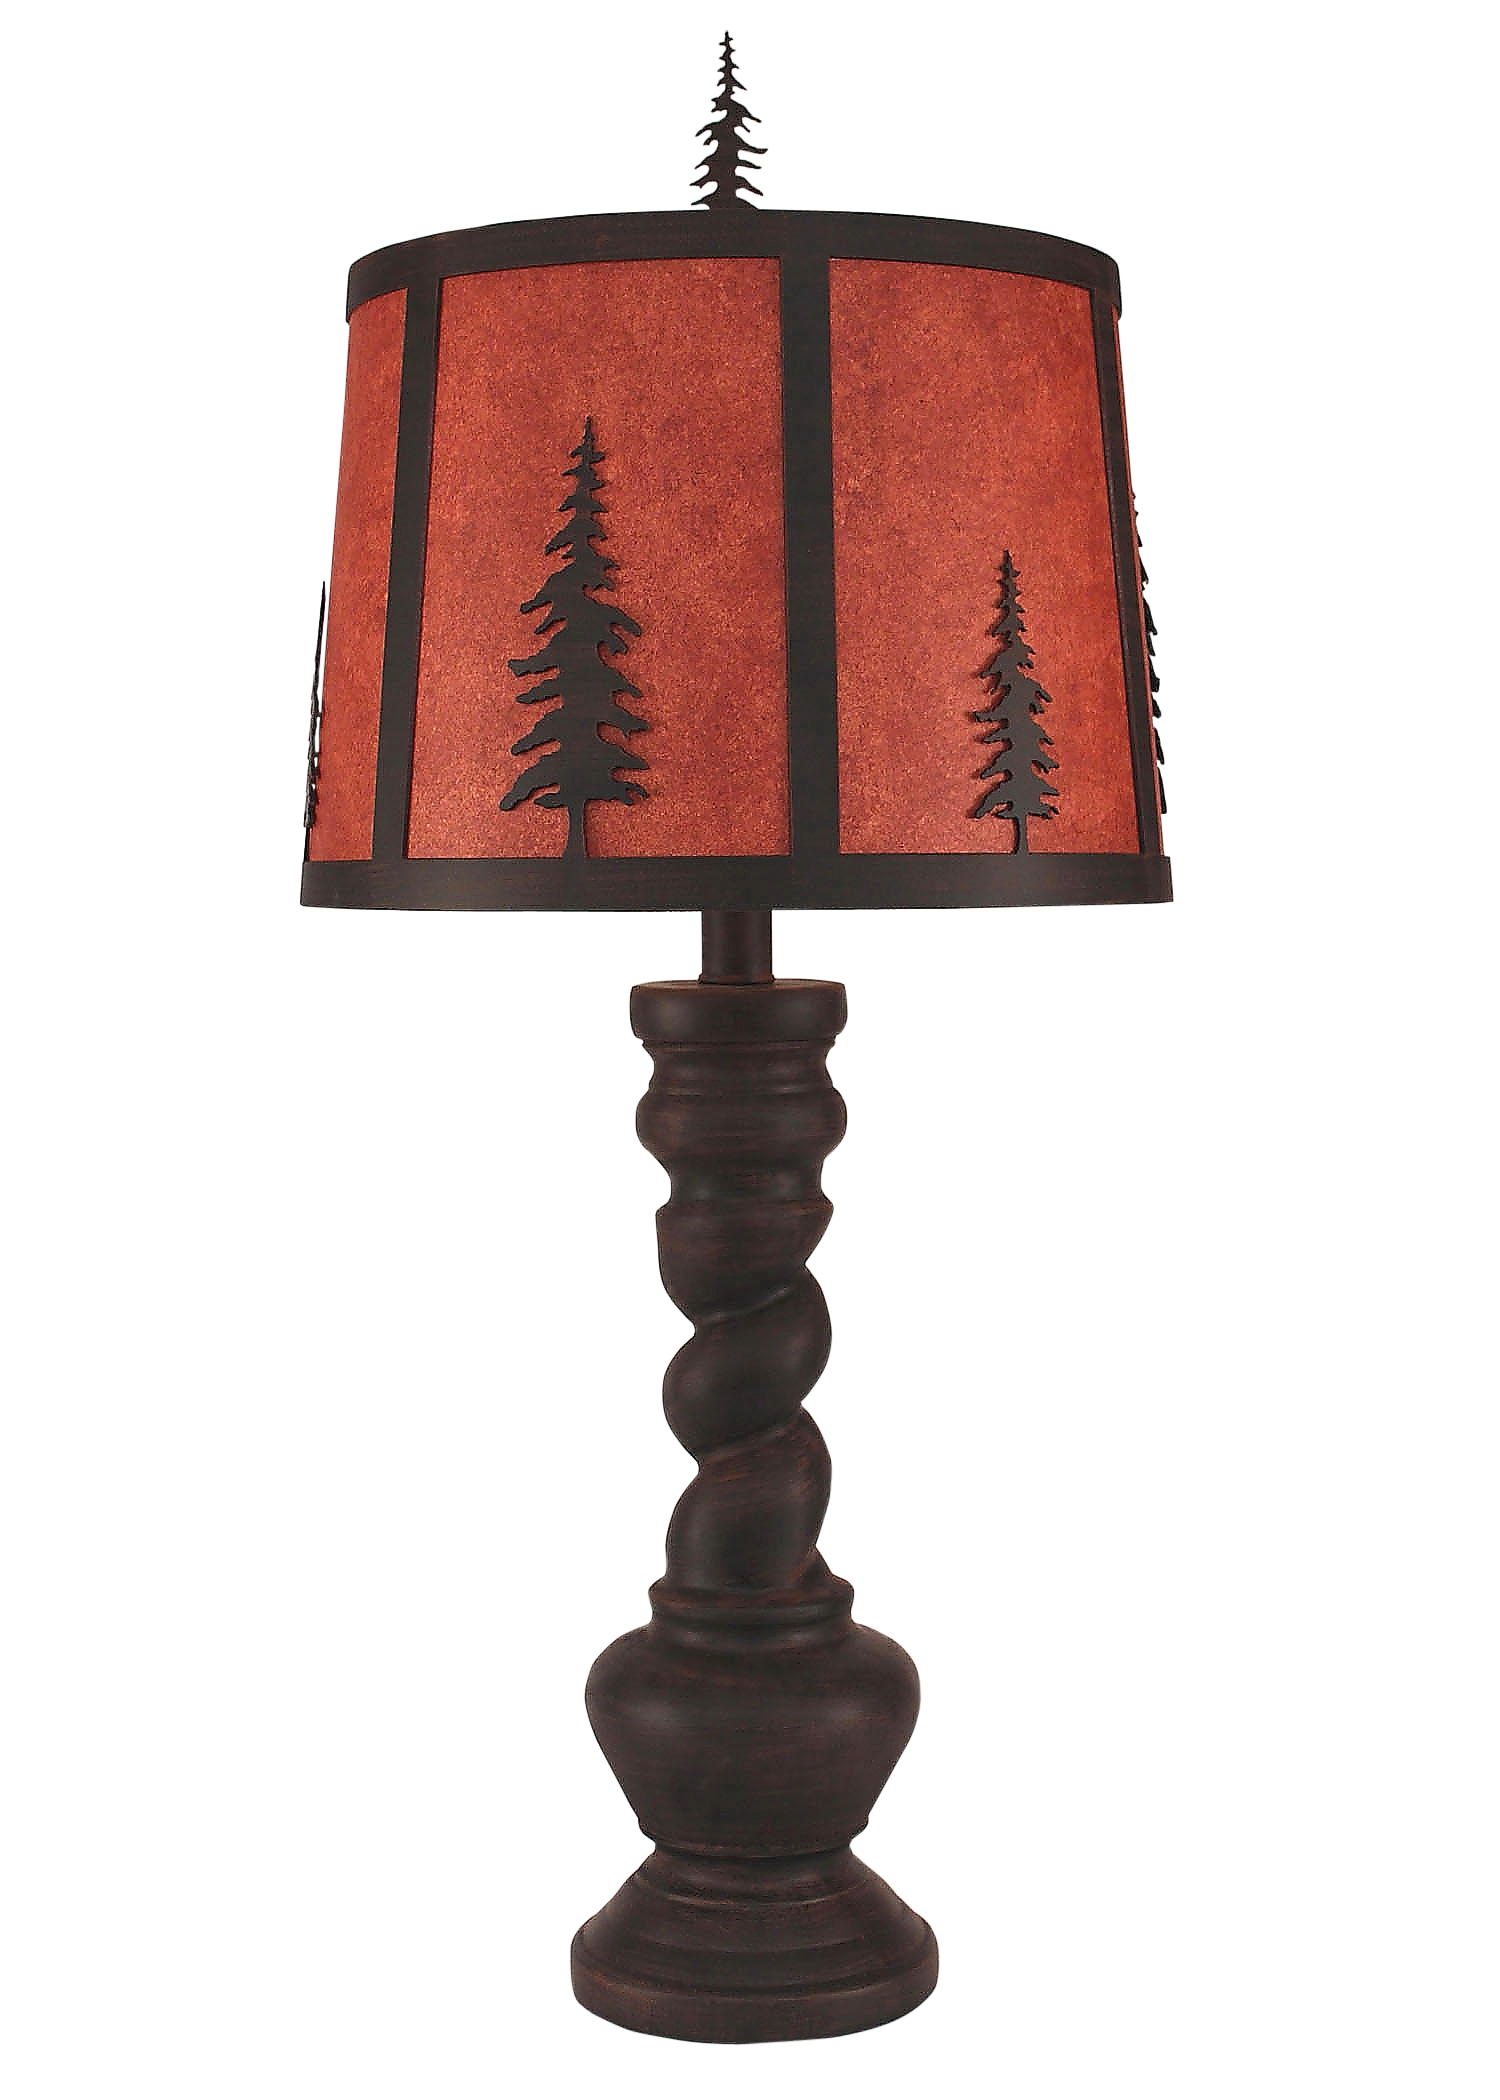 Burnt sienna country twist table lamp w iron tree shade coast burnt sienna country twist table lamp w iron tree shade coast lamp shop aloadofball Images